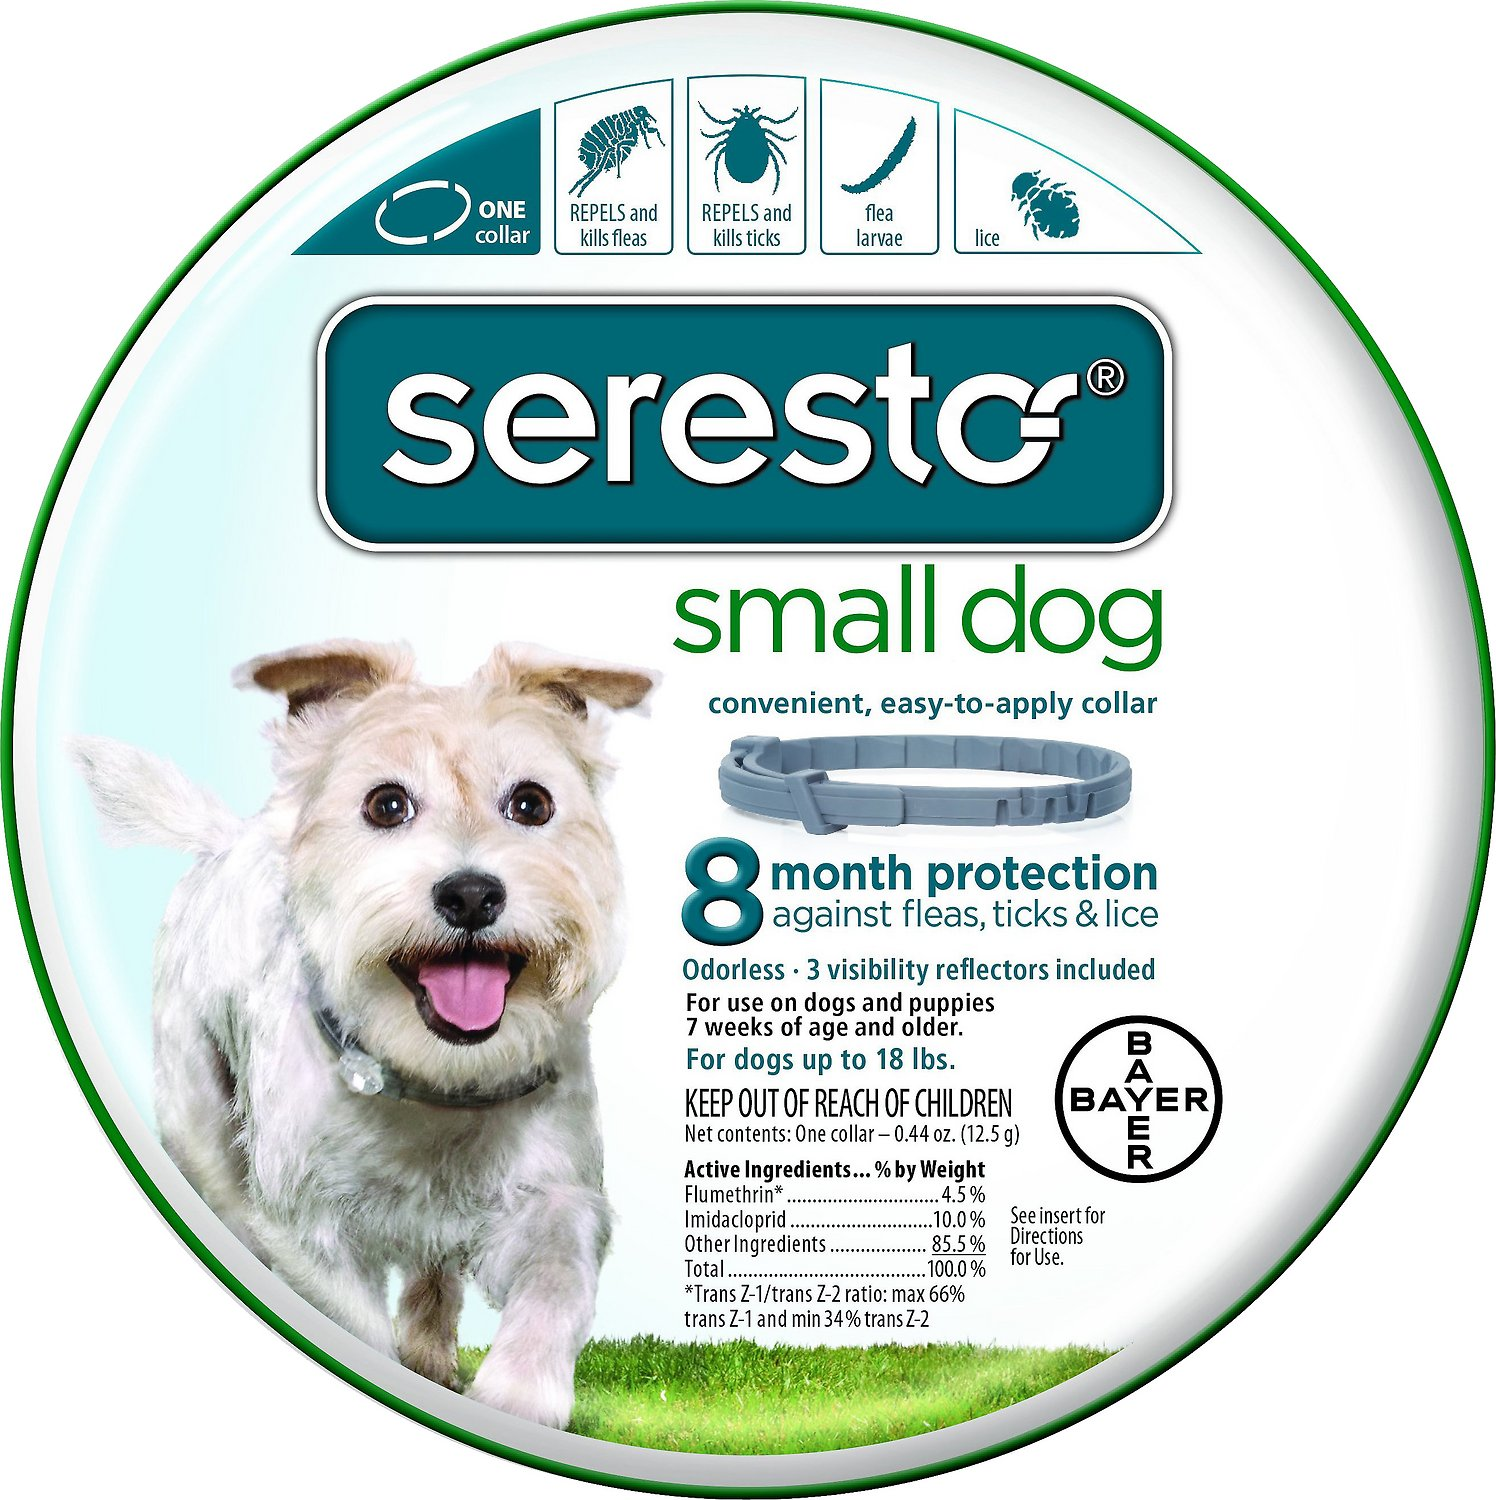 Seresto 8 Month Flea & Tick Prevention Collar for Small Dogs up to 18lbs